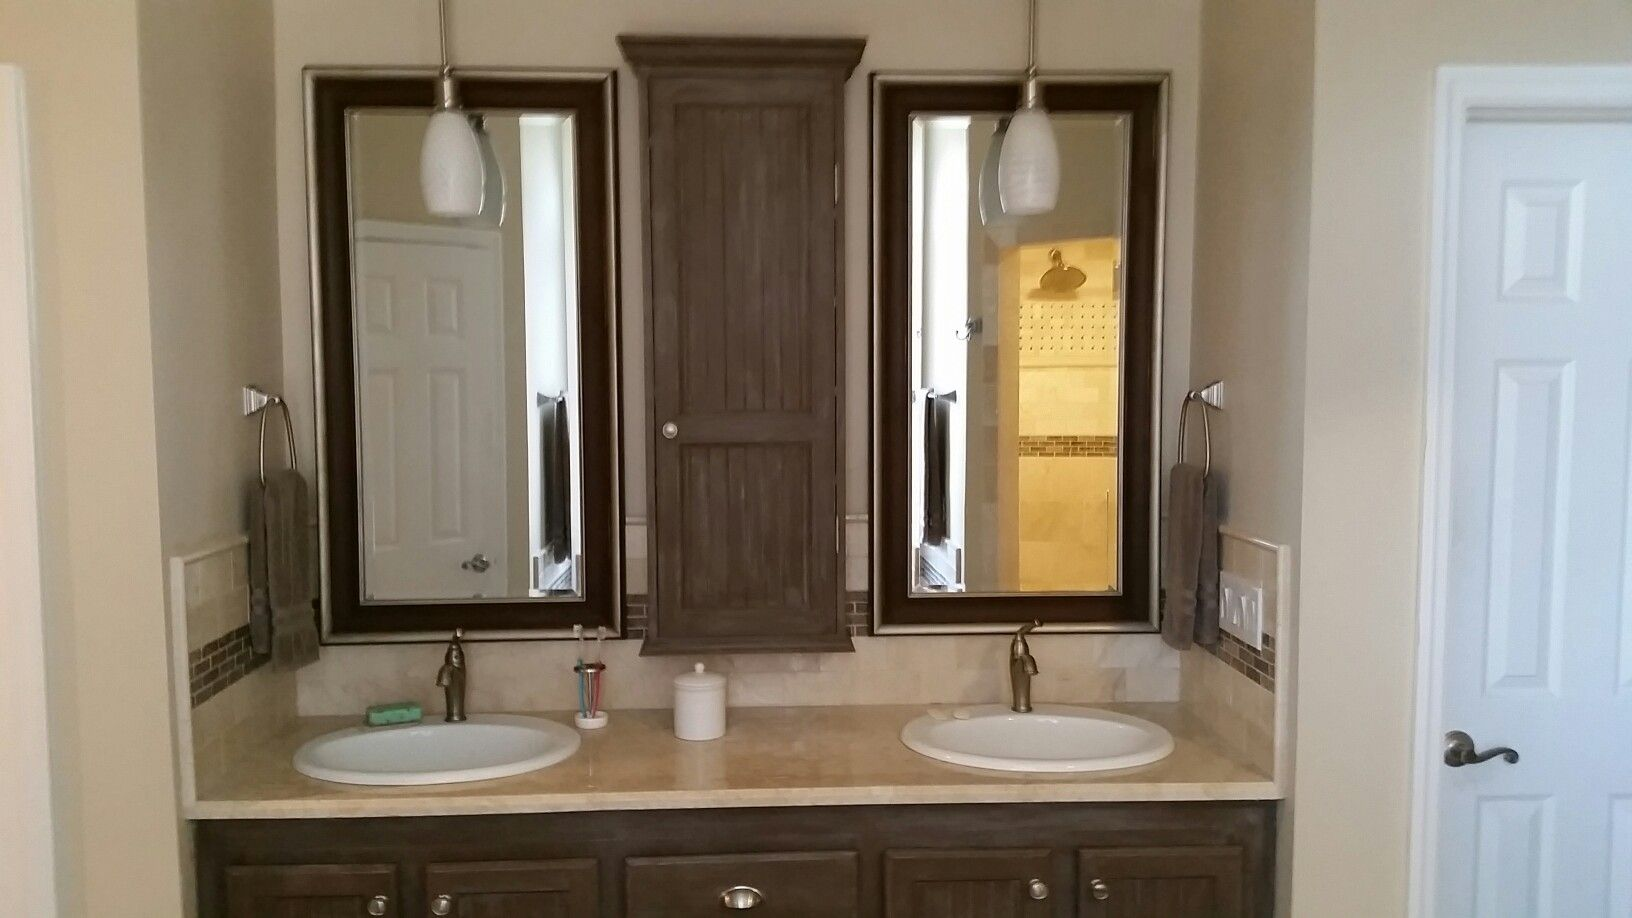 More of the bathroom remodel. Old bath had the typical wall mirror ...